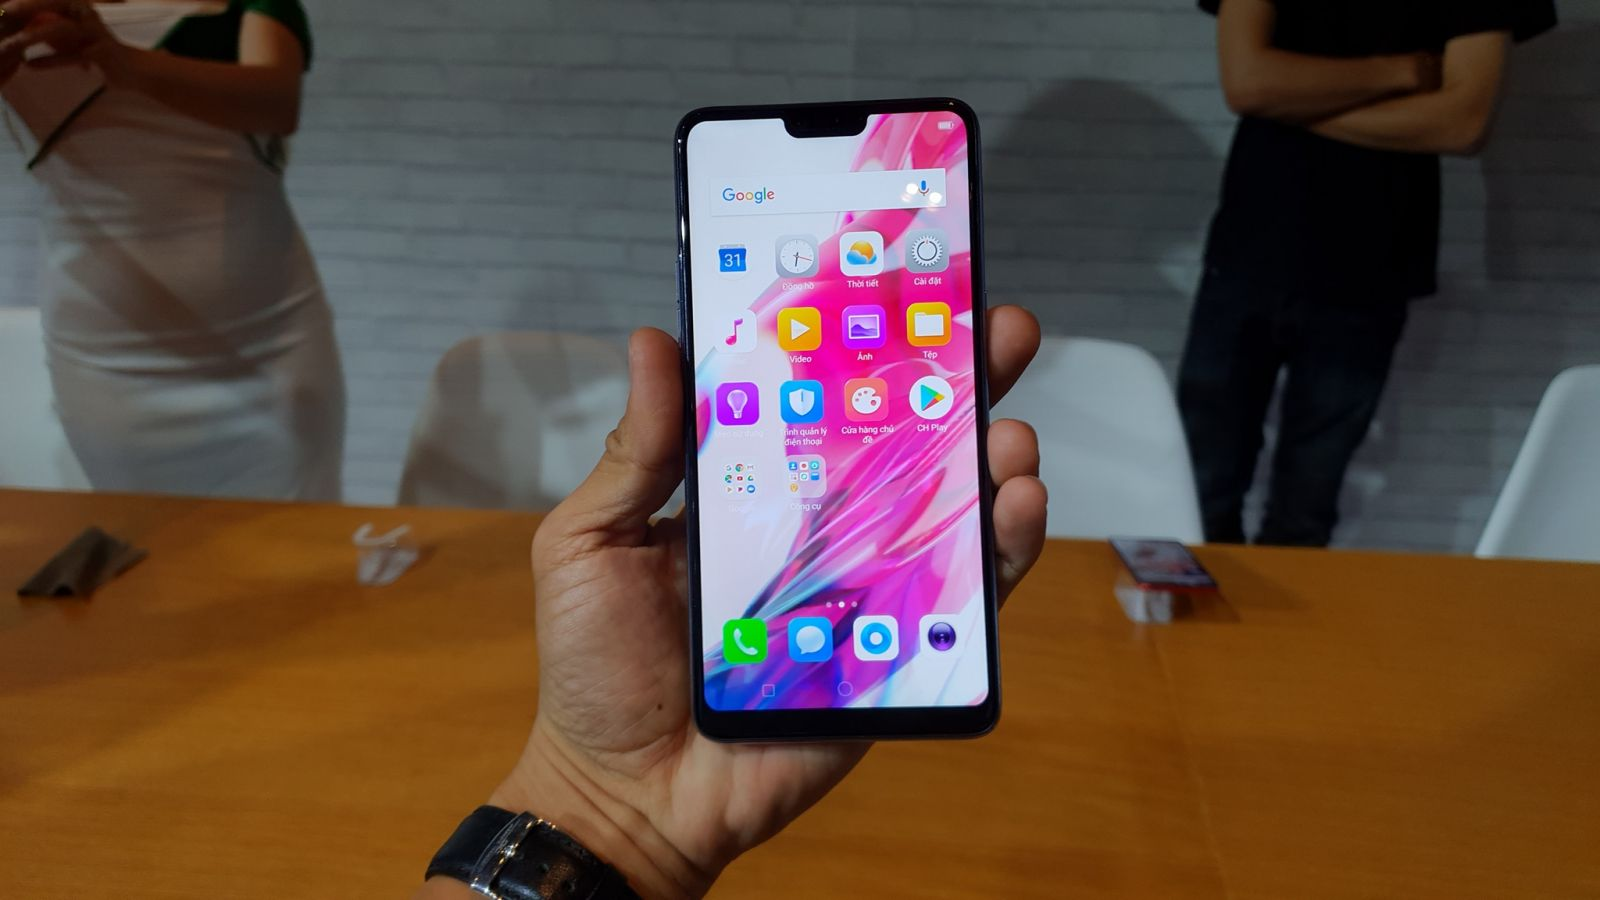 ảnh oppo f7 hang cong ty.3